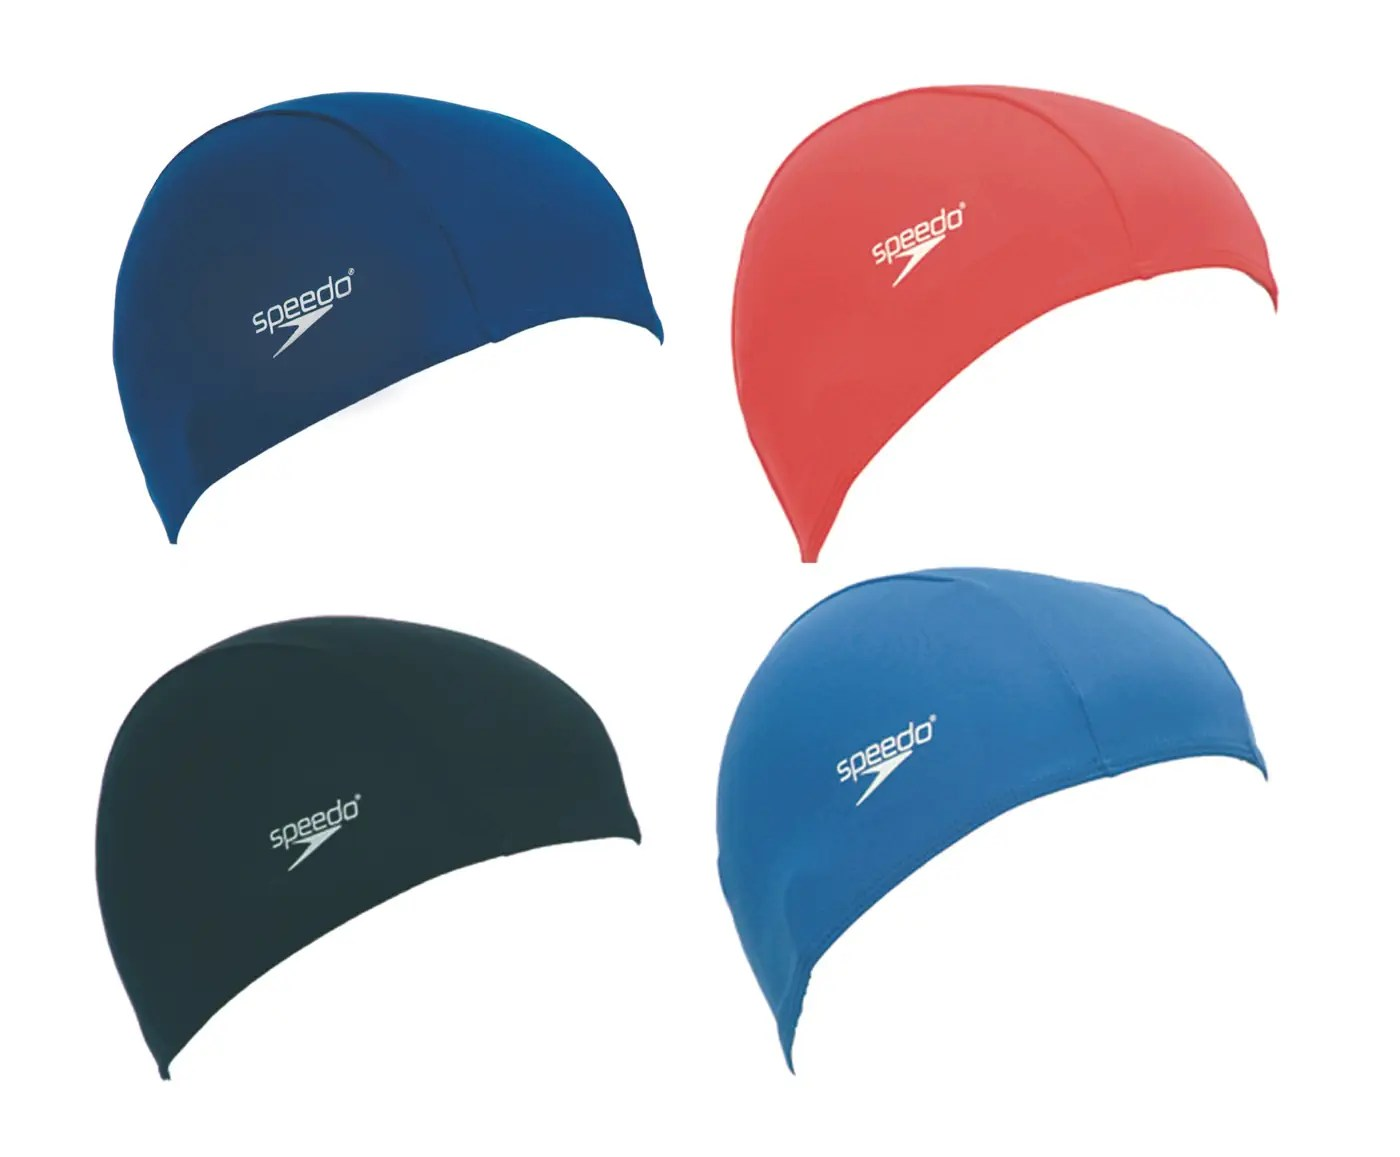 Badecape Kinder Speedo Polyester Cap Junior Kinder Badekappe